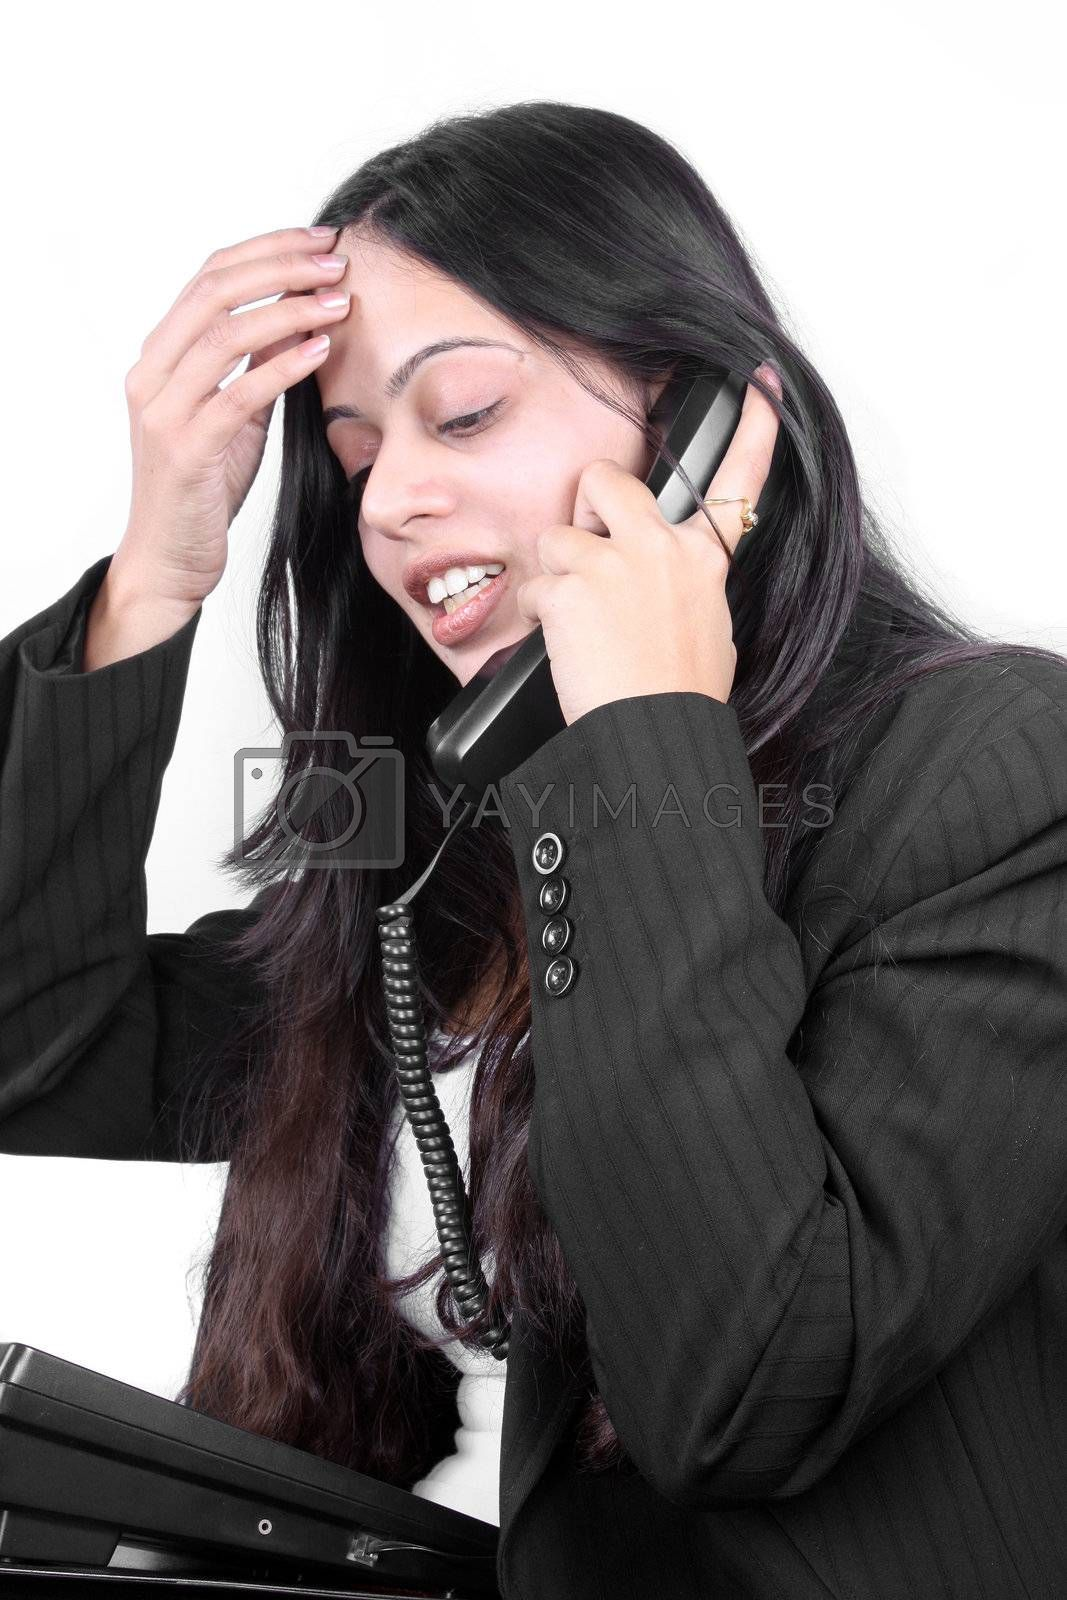 An Indian businesswoman facing problem in communicating with a client over a telephonic conversation.